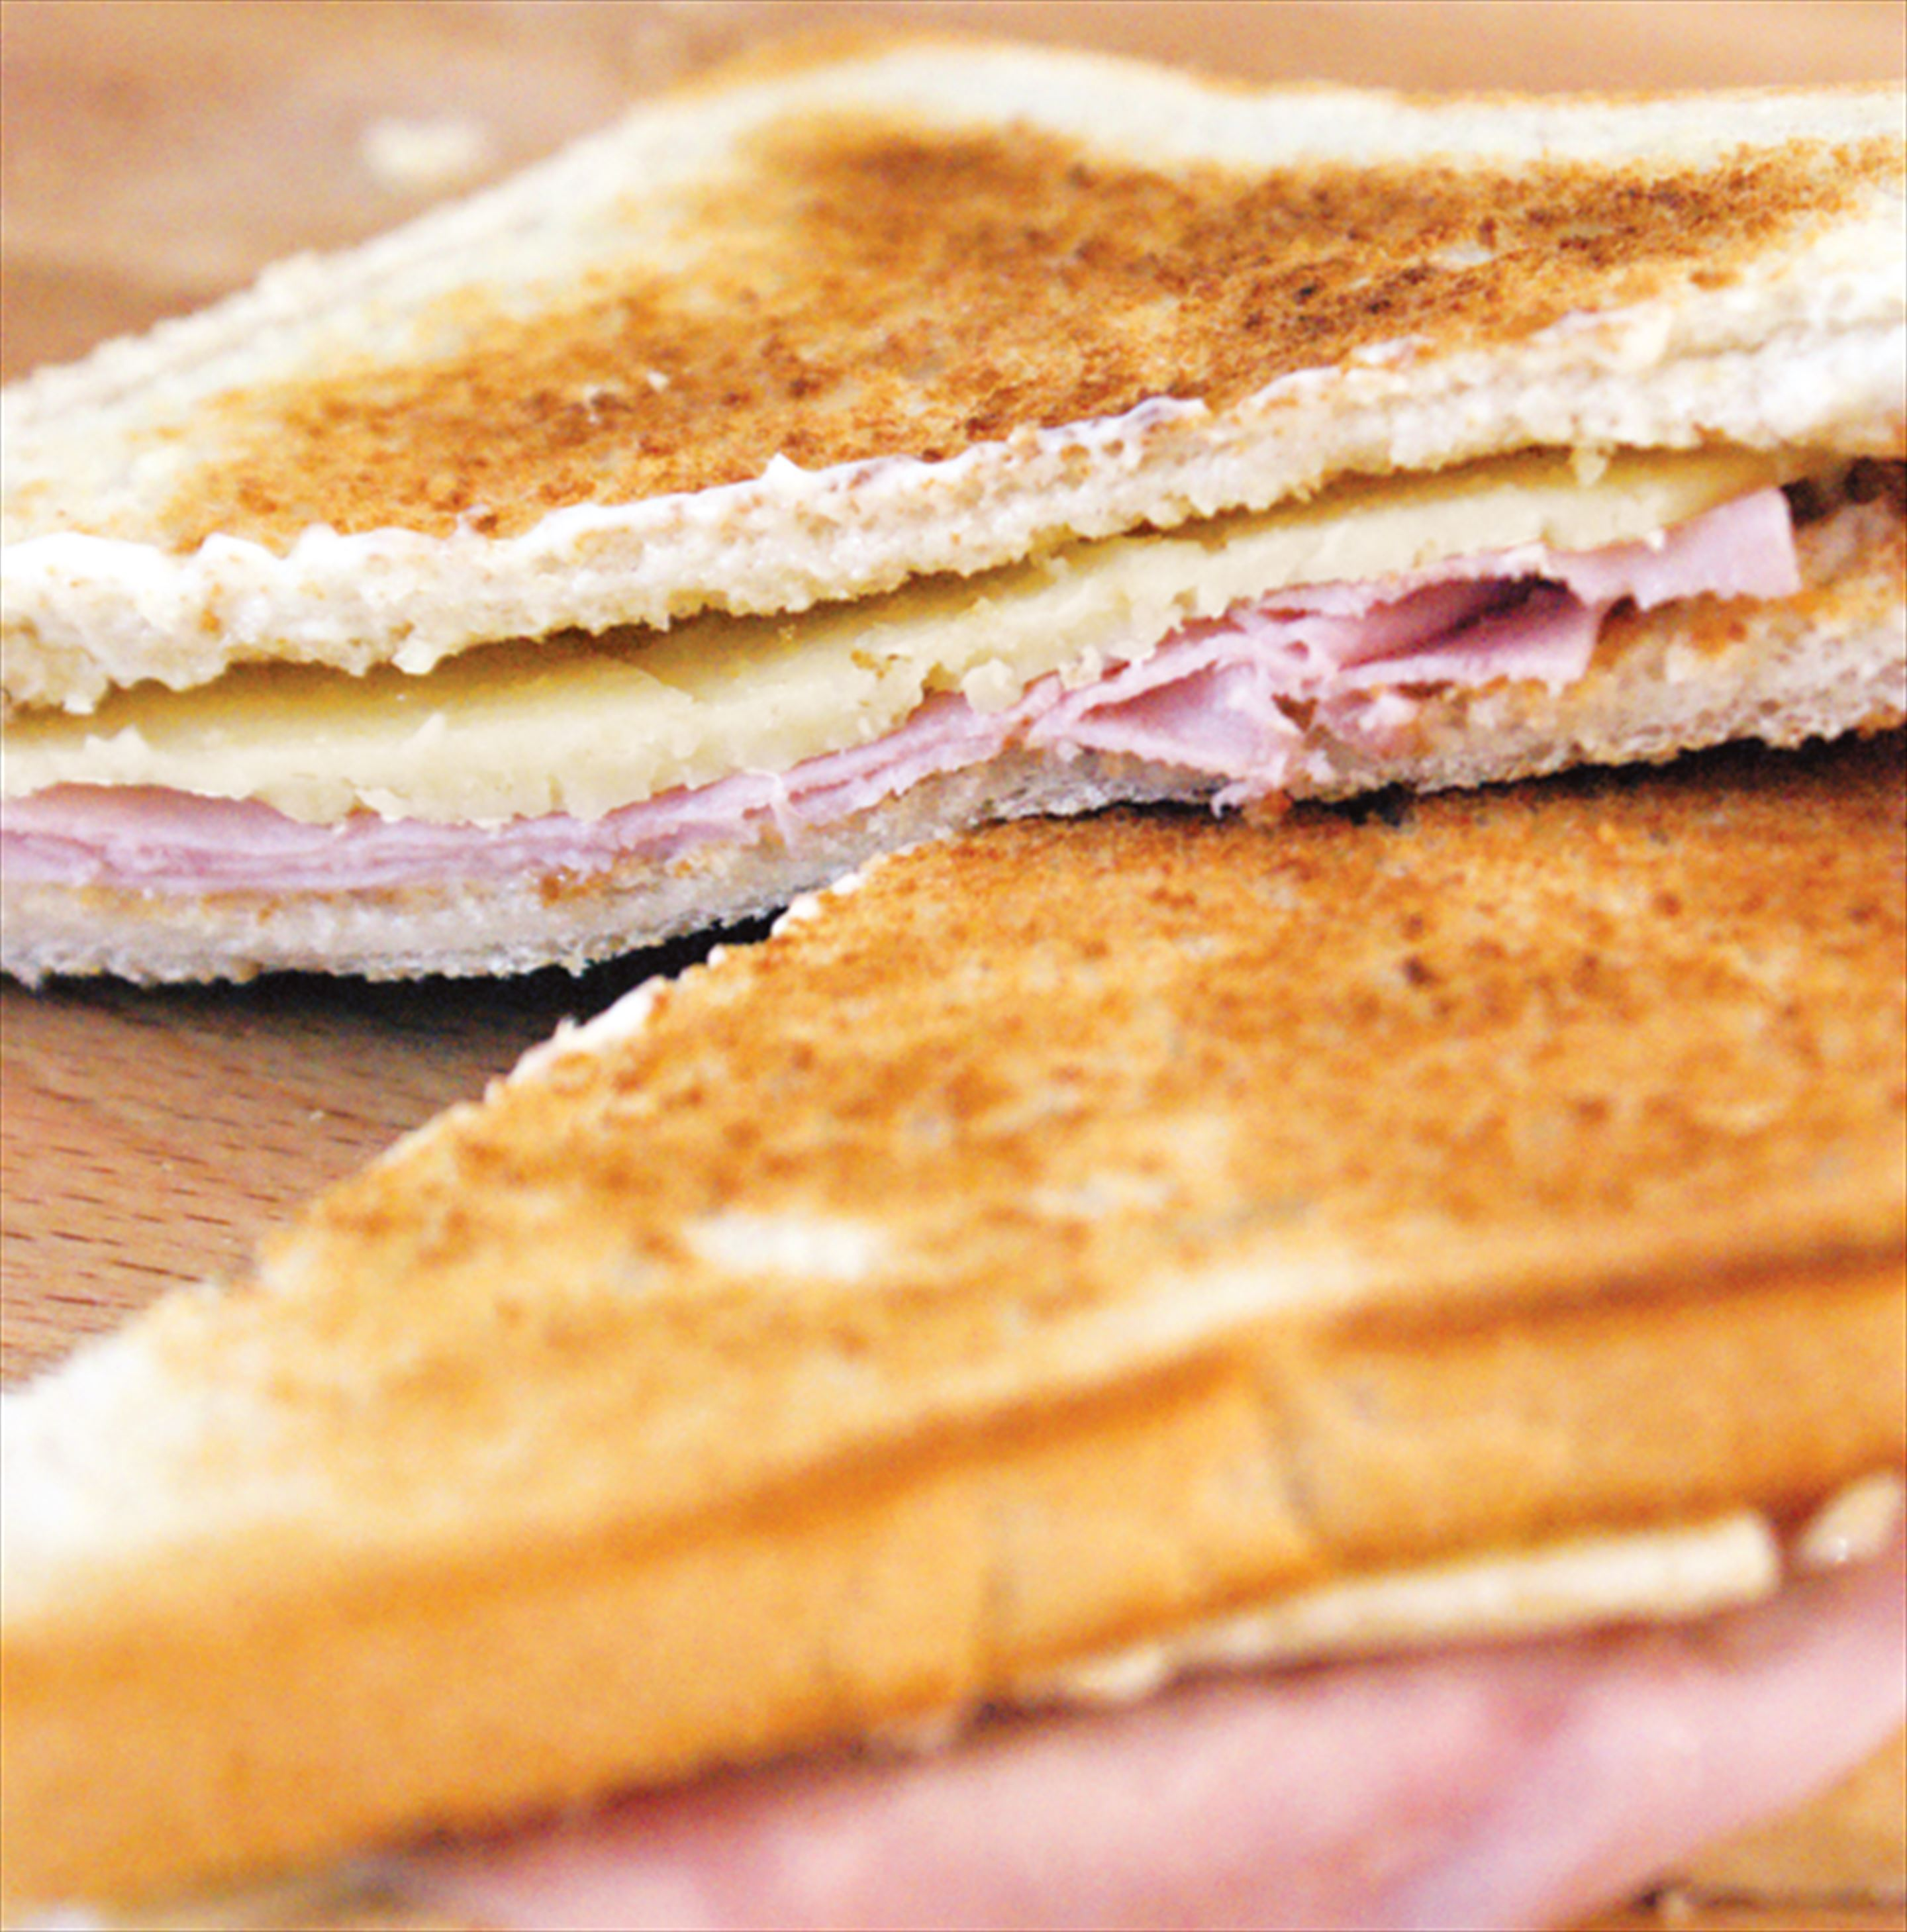 Ham and cheese toasty